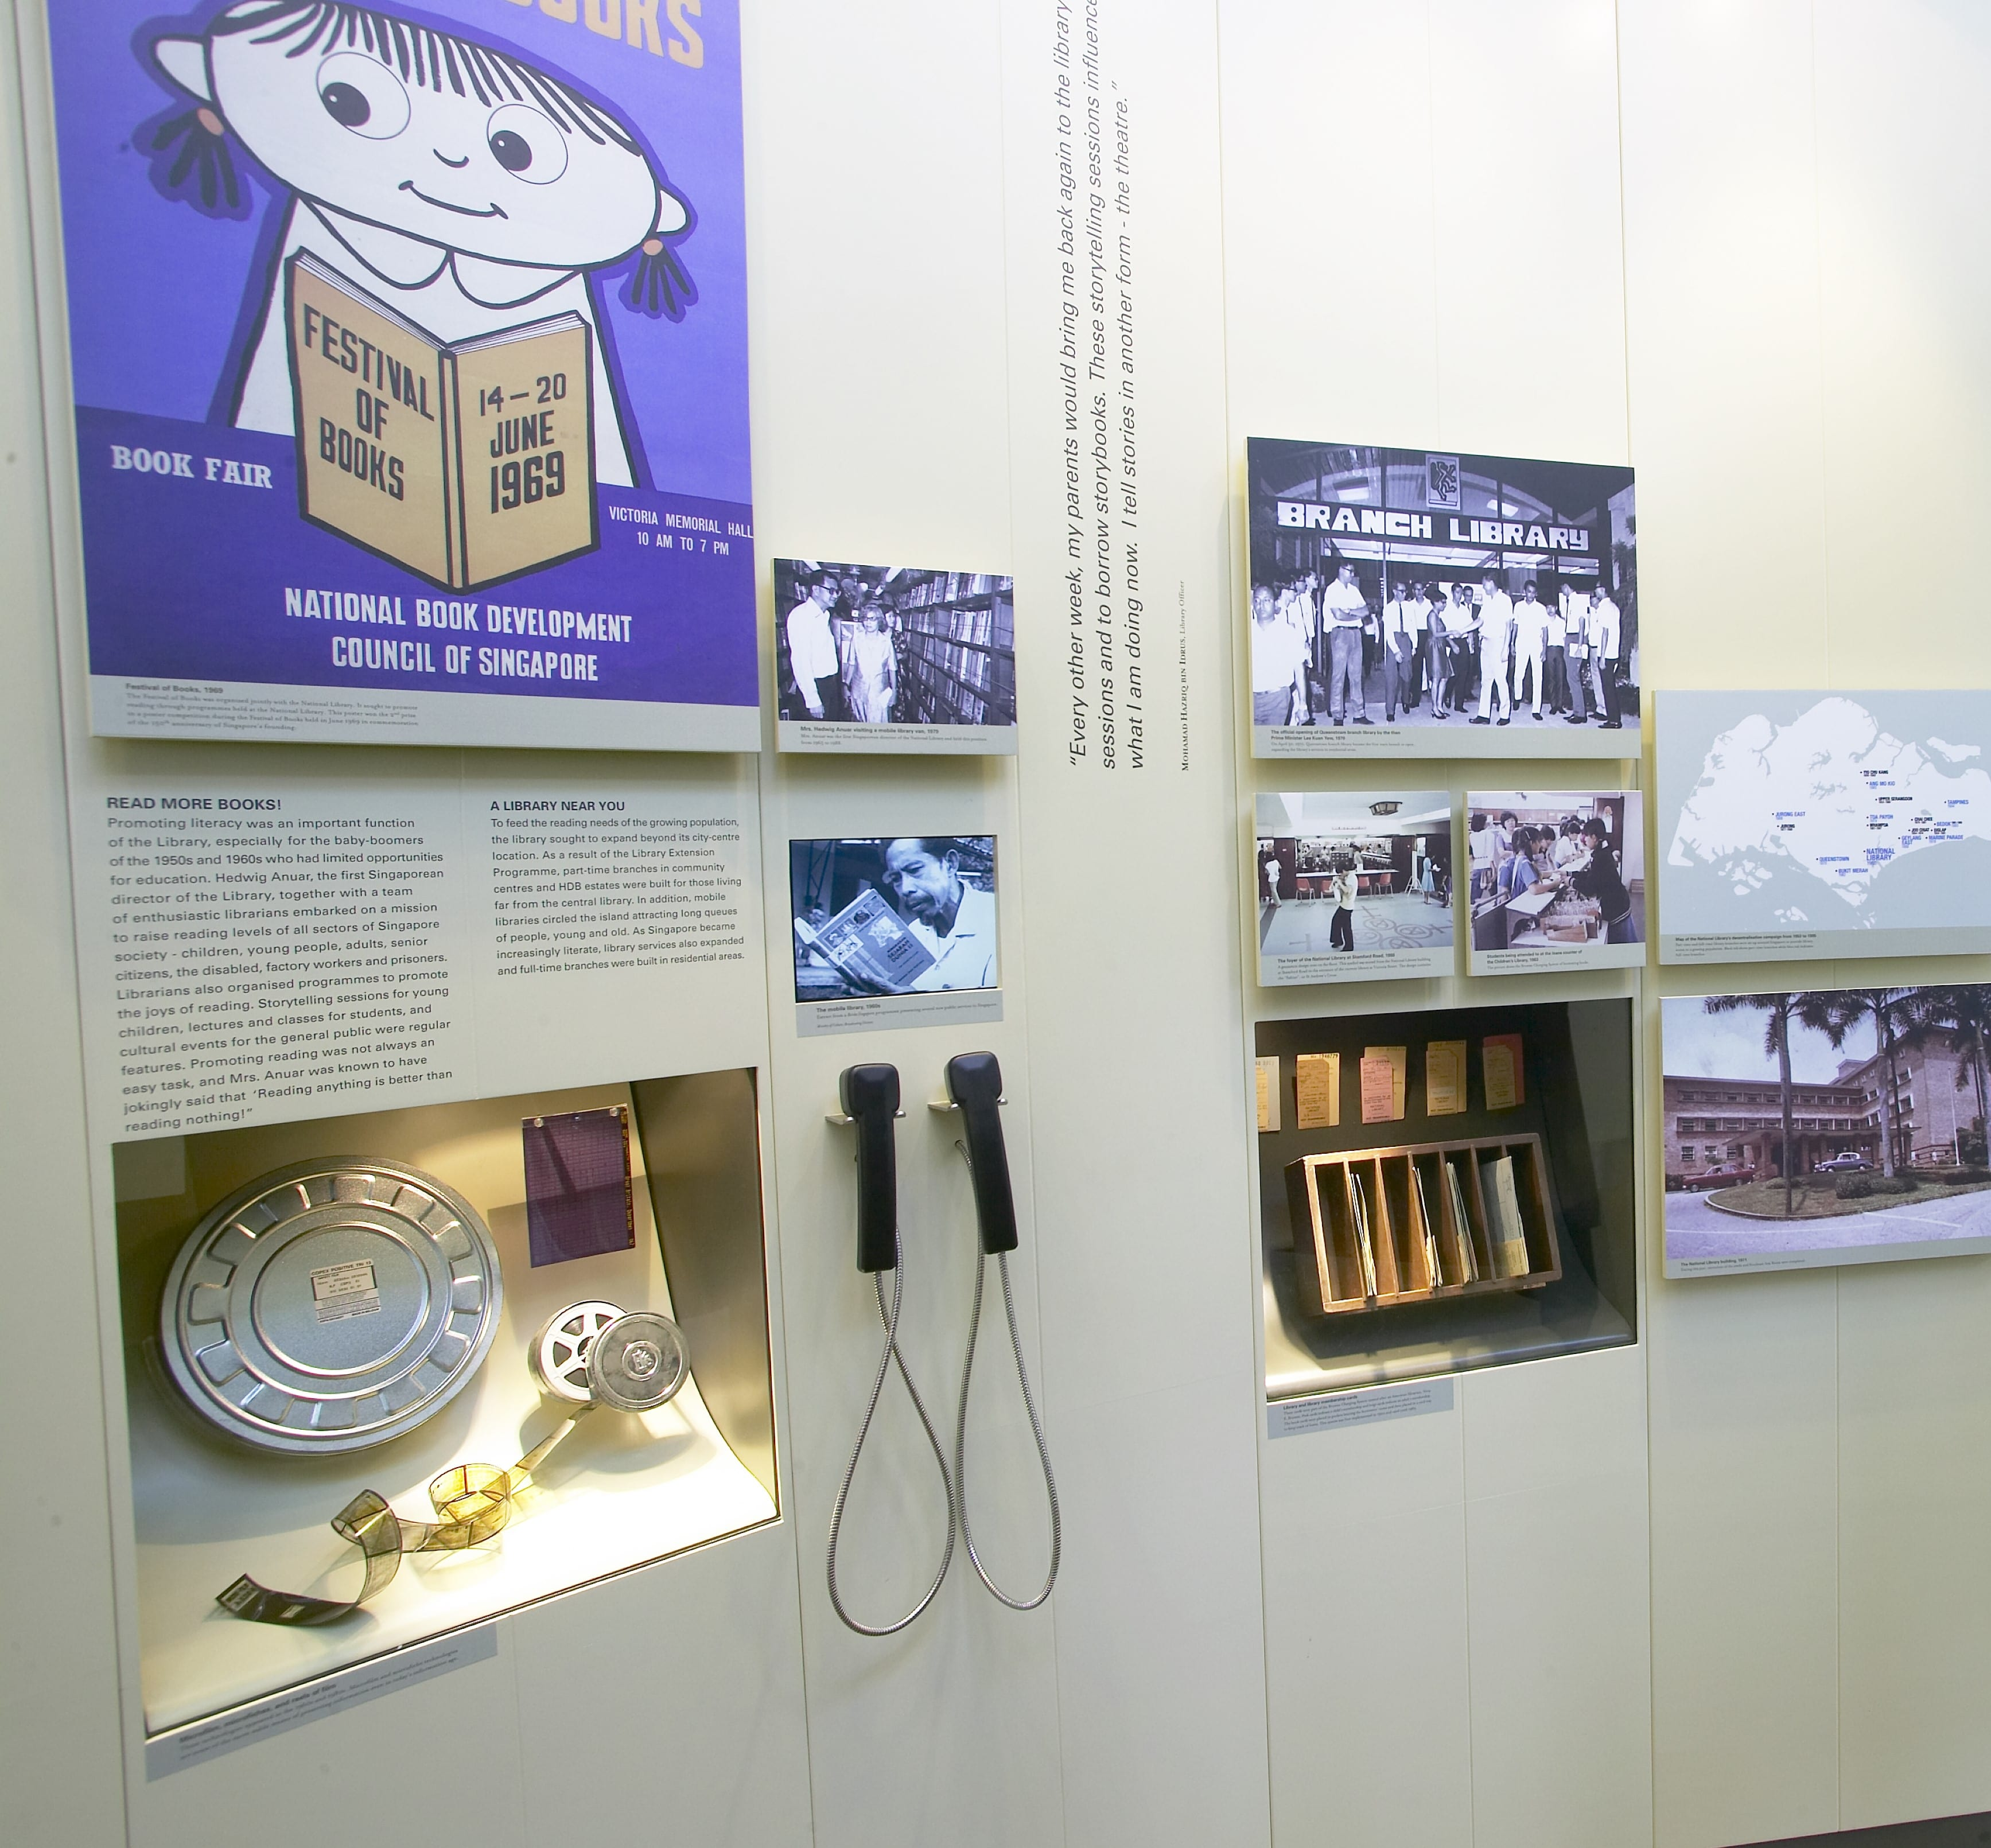 A photo close-up of a wall display, featuring the 1960s history of the National Library. On the top left, there is a poster with a cartoon girl and her book, by the National Book Development Council of Singapore. In the center, there is a small TV screen with audio handsets. On the right showcase, there is a wooden box with old book loan cards on display.